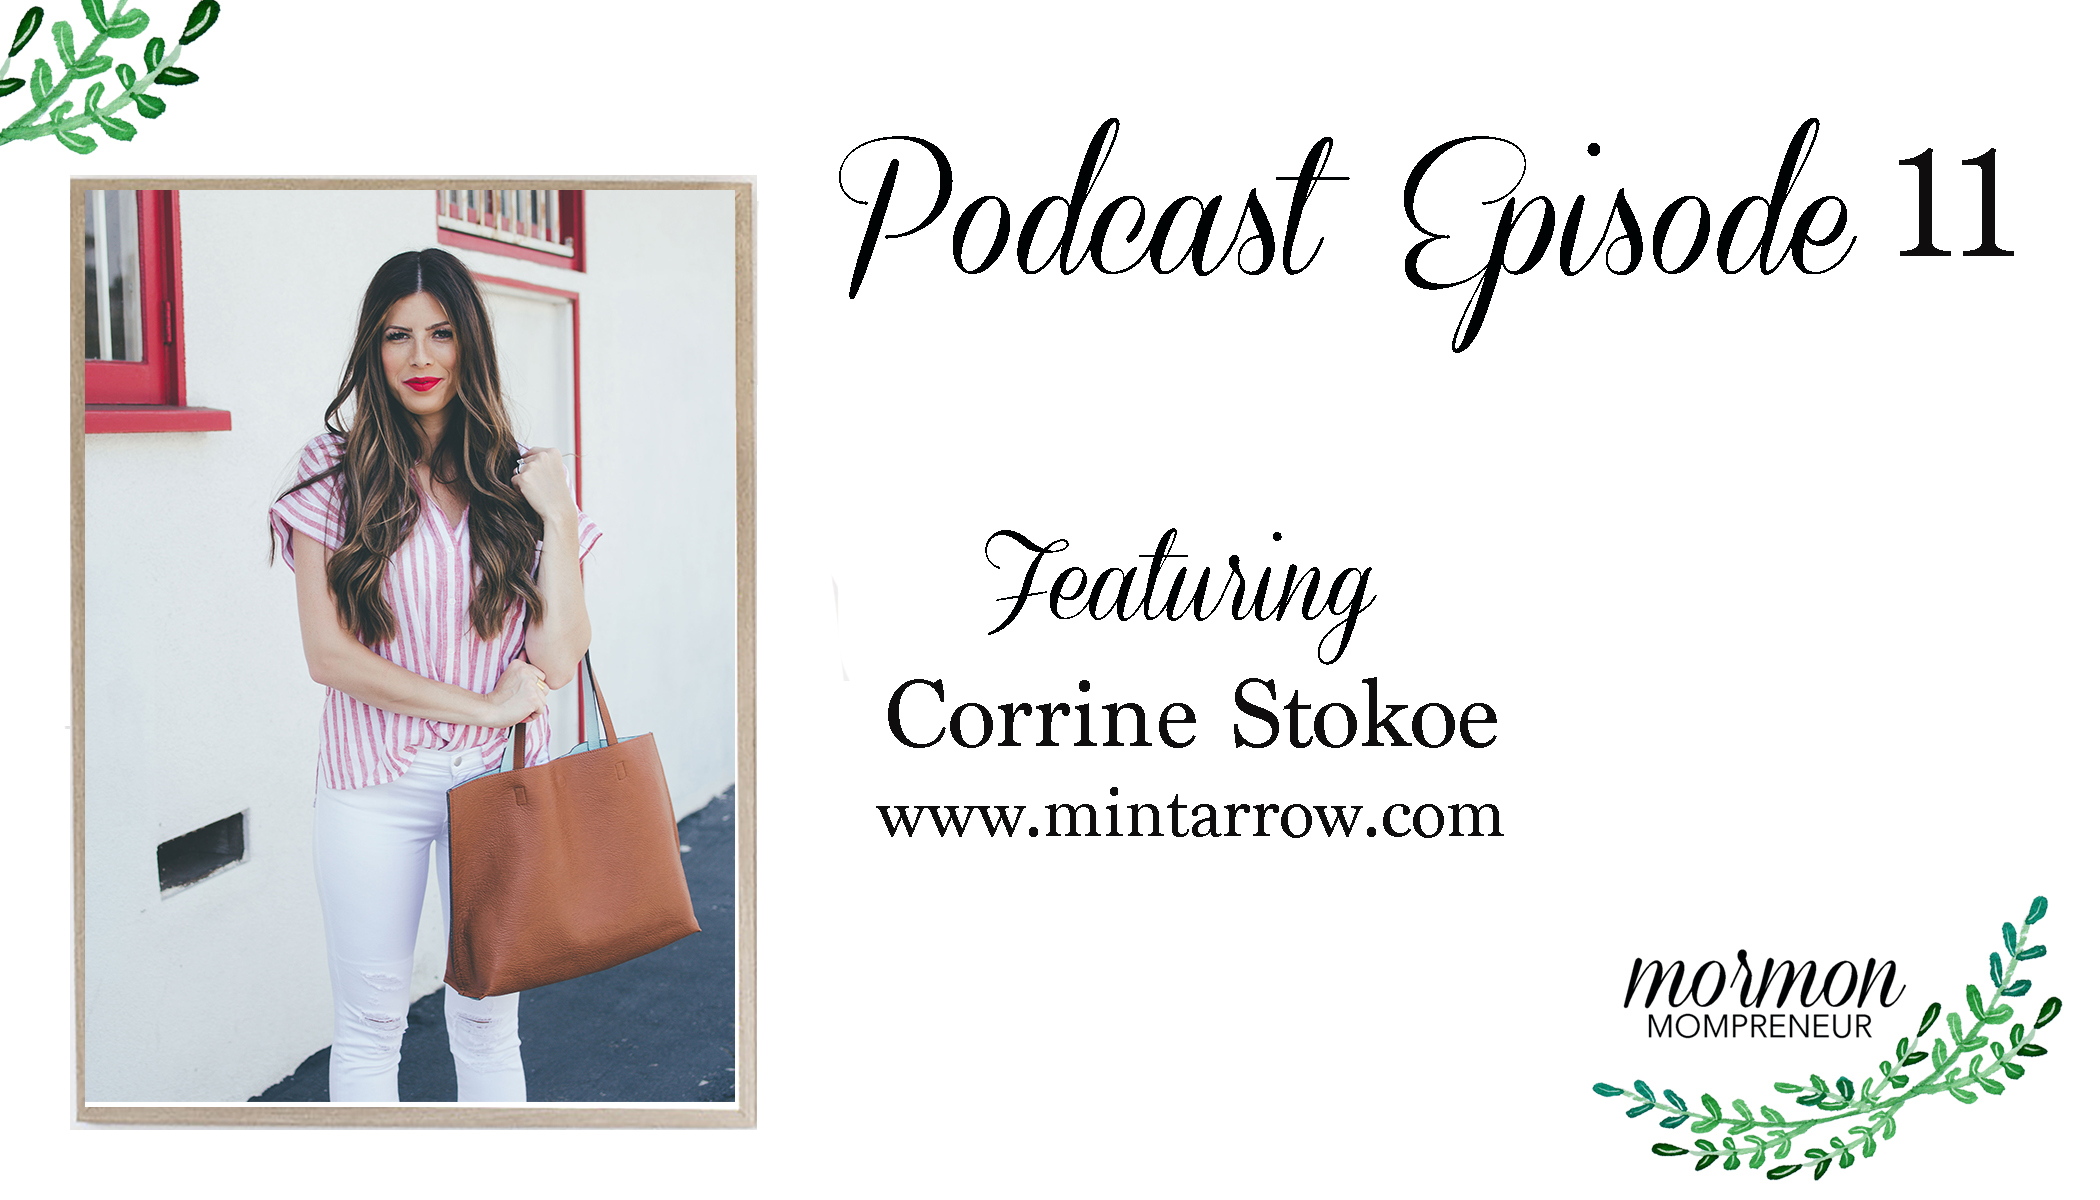 Mormon Mompreneur podcast corrine stokoe mint arrow